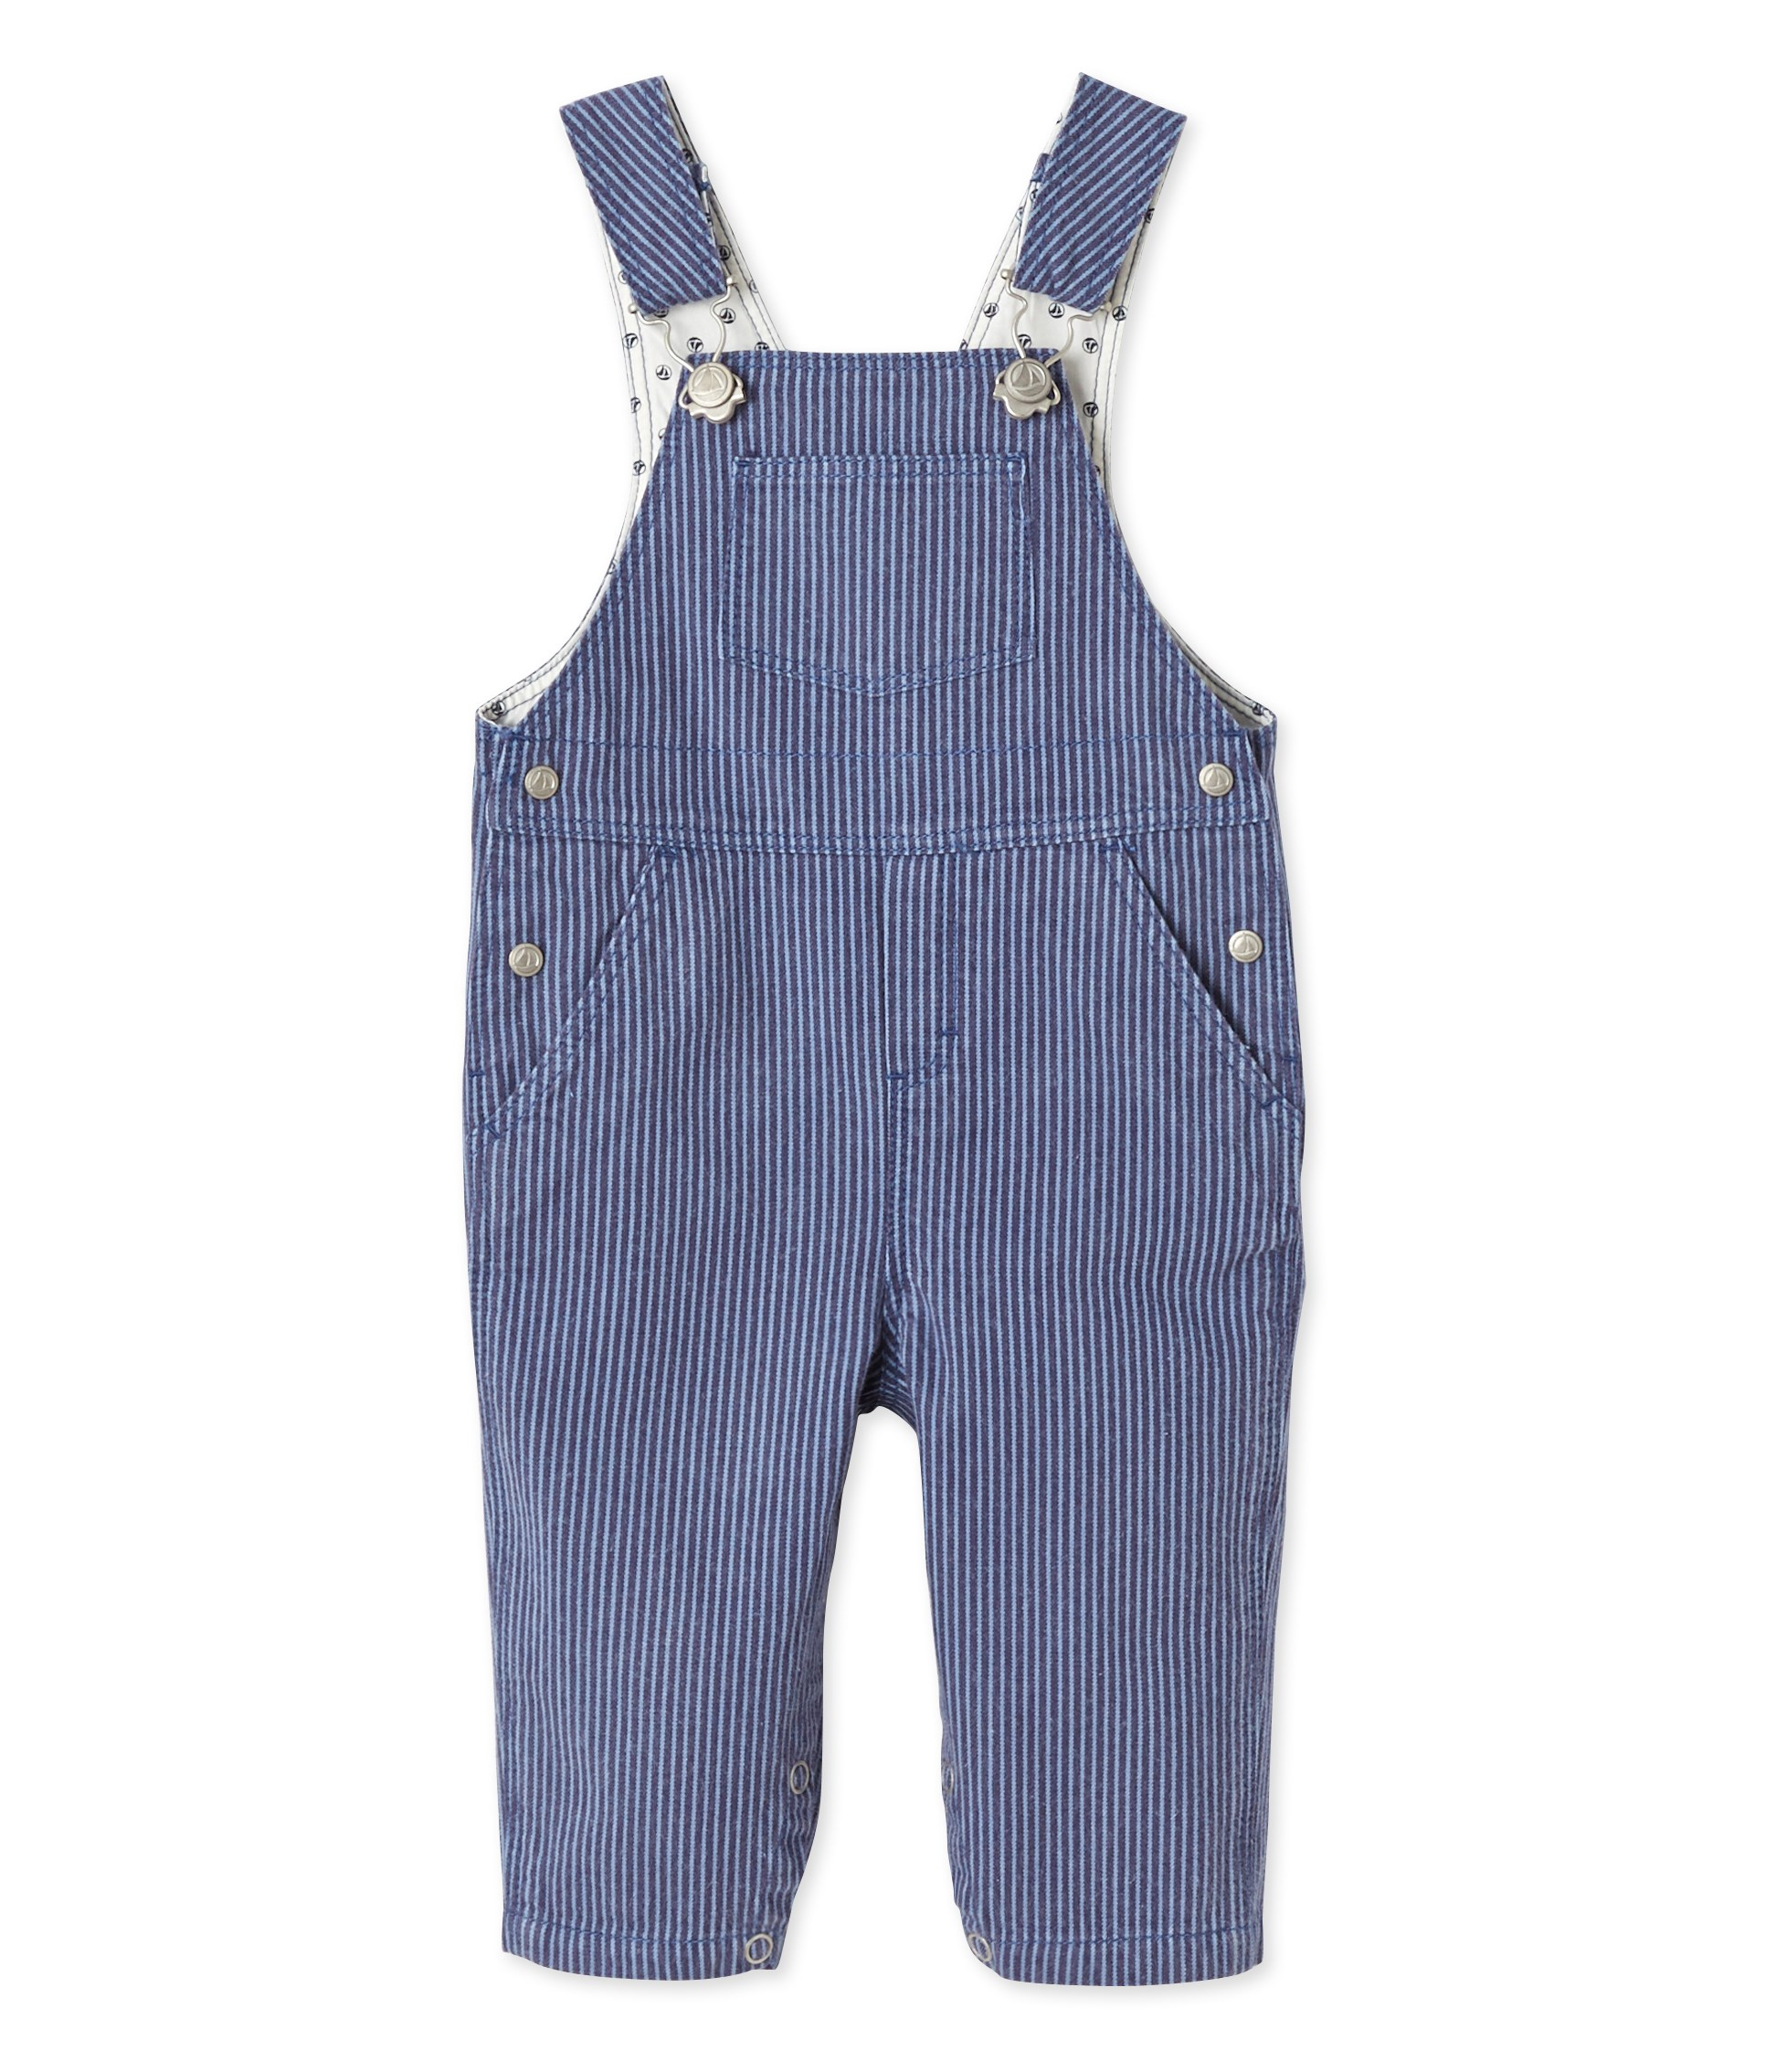 a8d39ffc5632 BABY BOY S STRIPED DUNGAREES